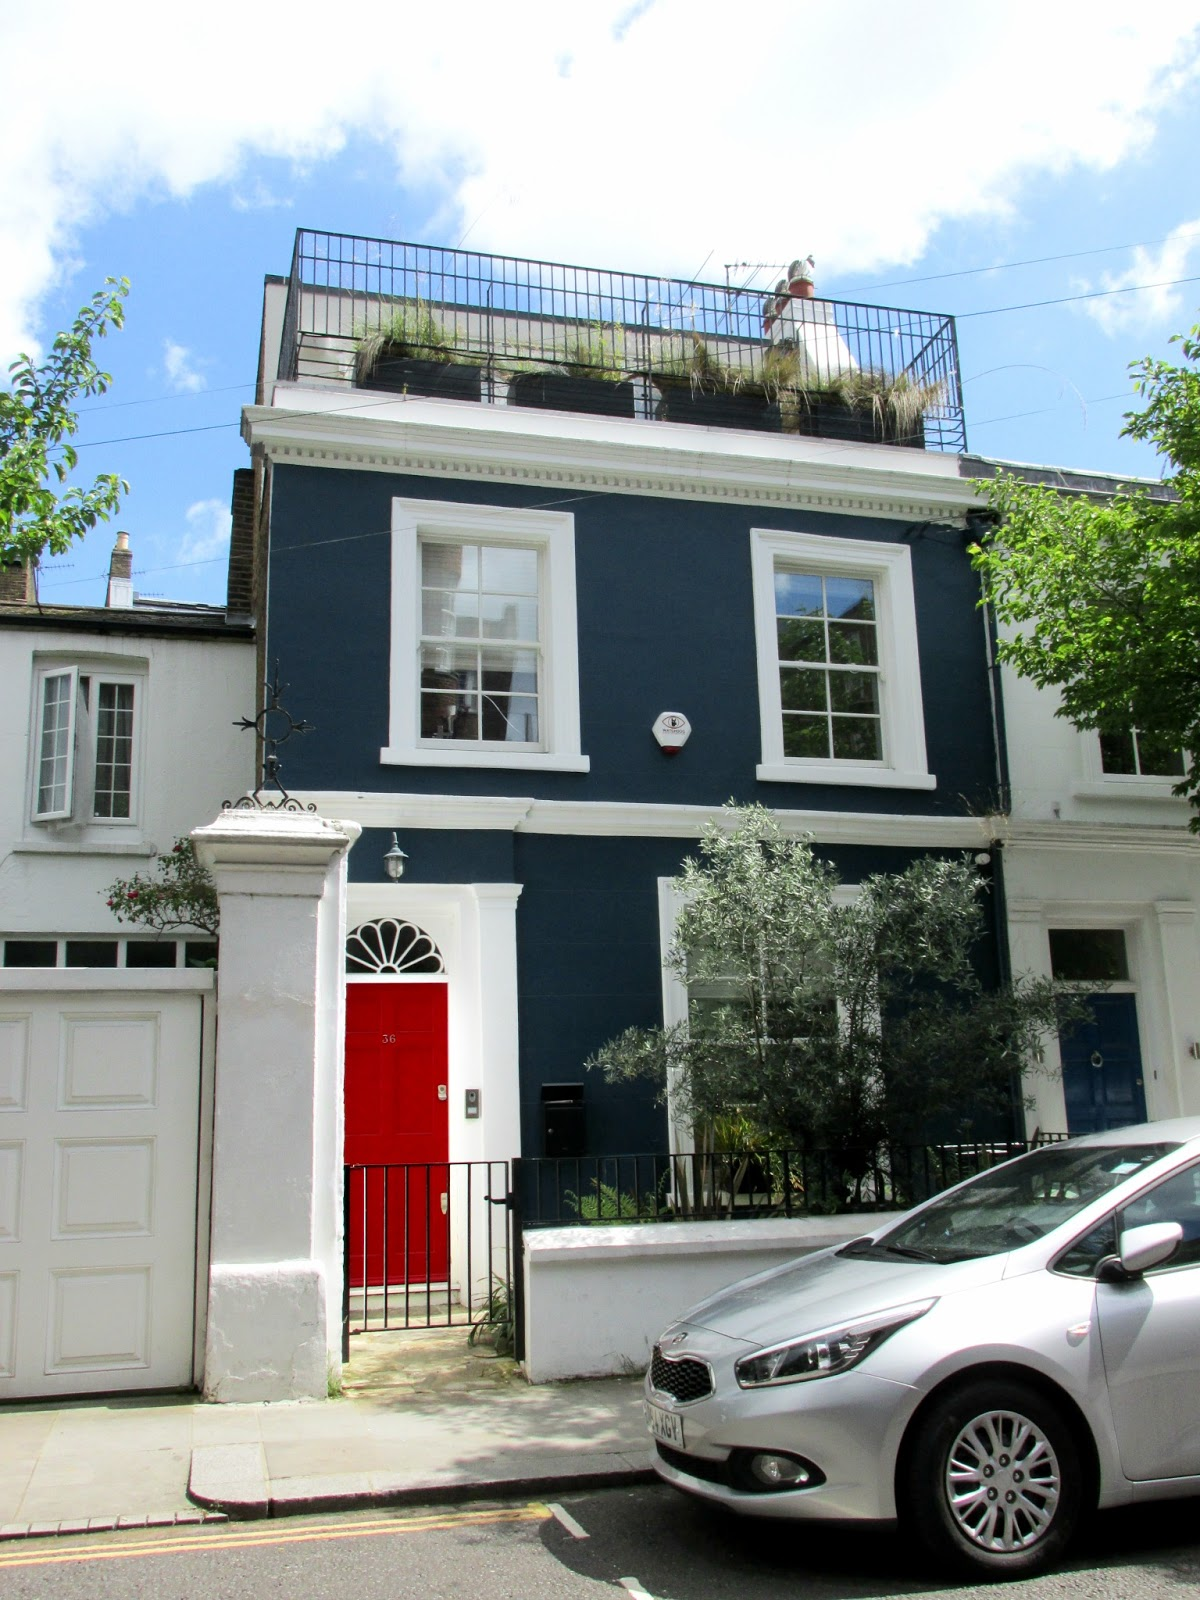 My notting hill blog - Before We Headed To The Farm Girl Caf We Gazed In Awe And Jealousy As The Quaint Little Houses Notting Hill Is Synonymous With Beautiful Townhouses In